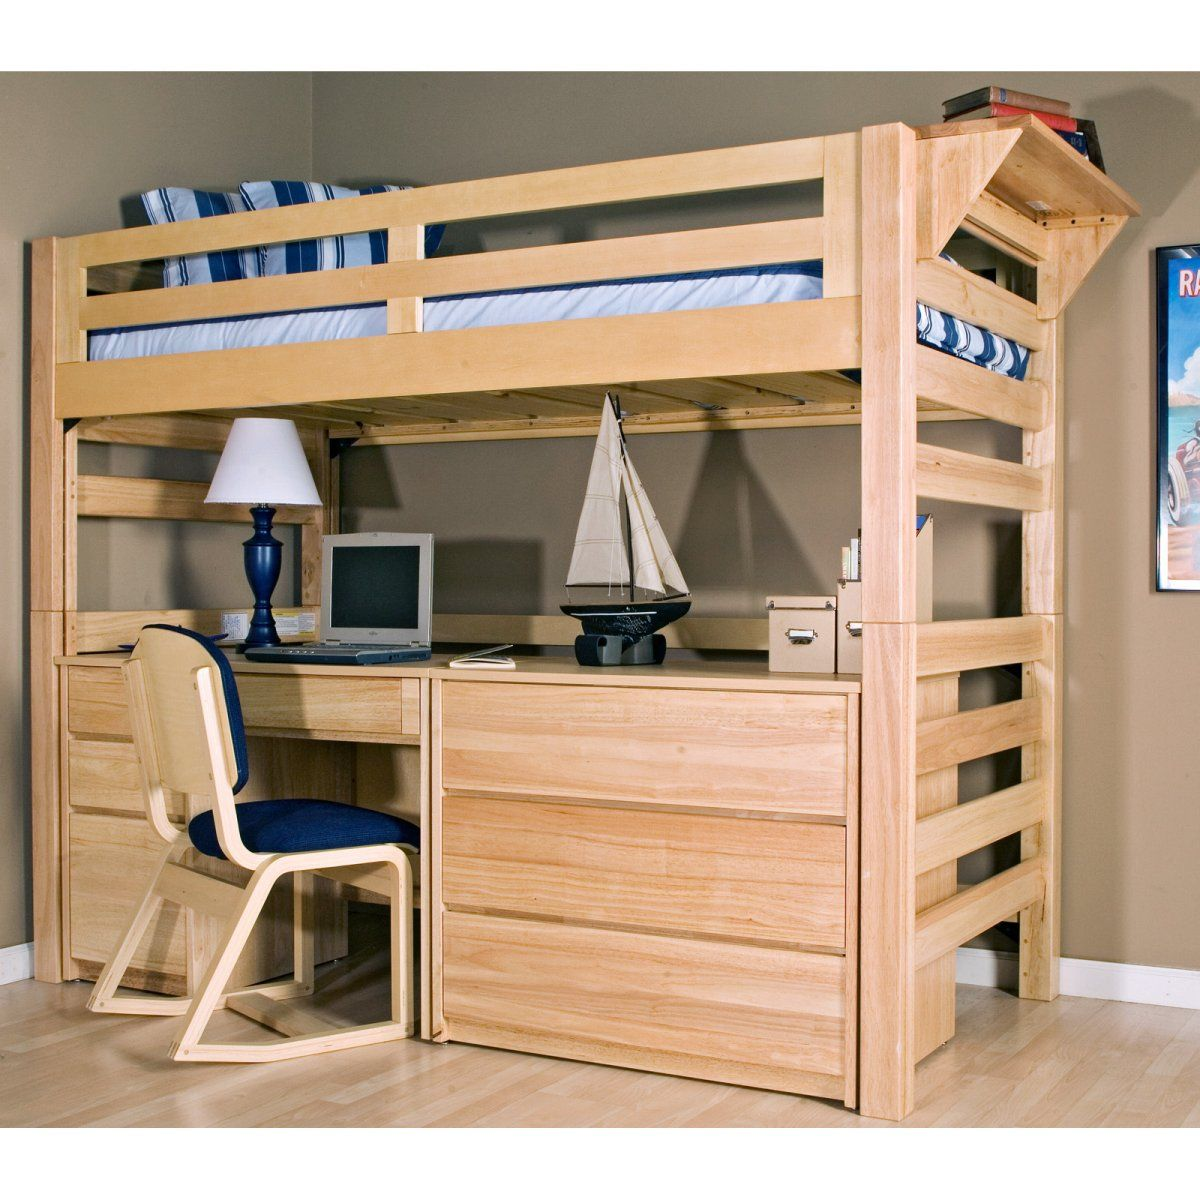 Wood bunk bed with desk underneath - Sculpture Of Wooden Loft Bed With Desk Most Recommended Space Available Furniture Set